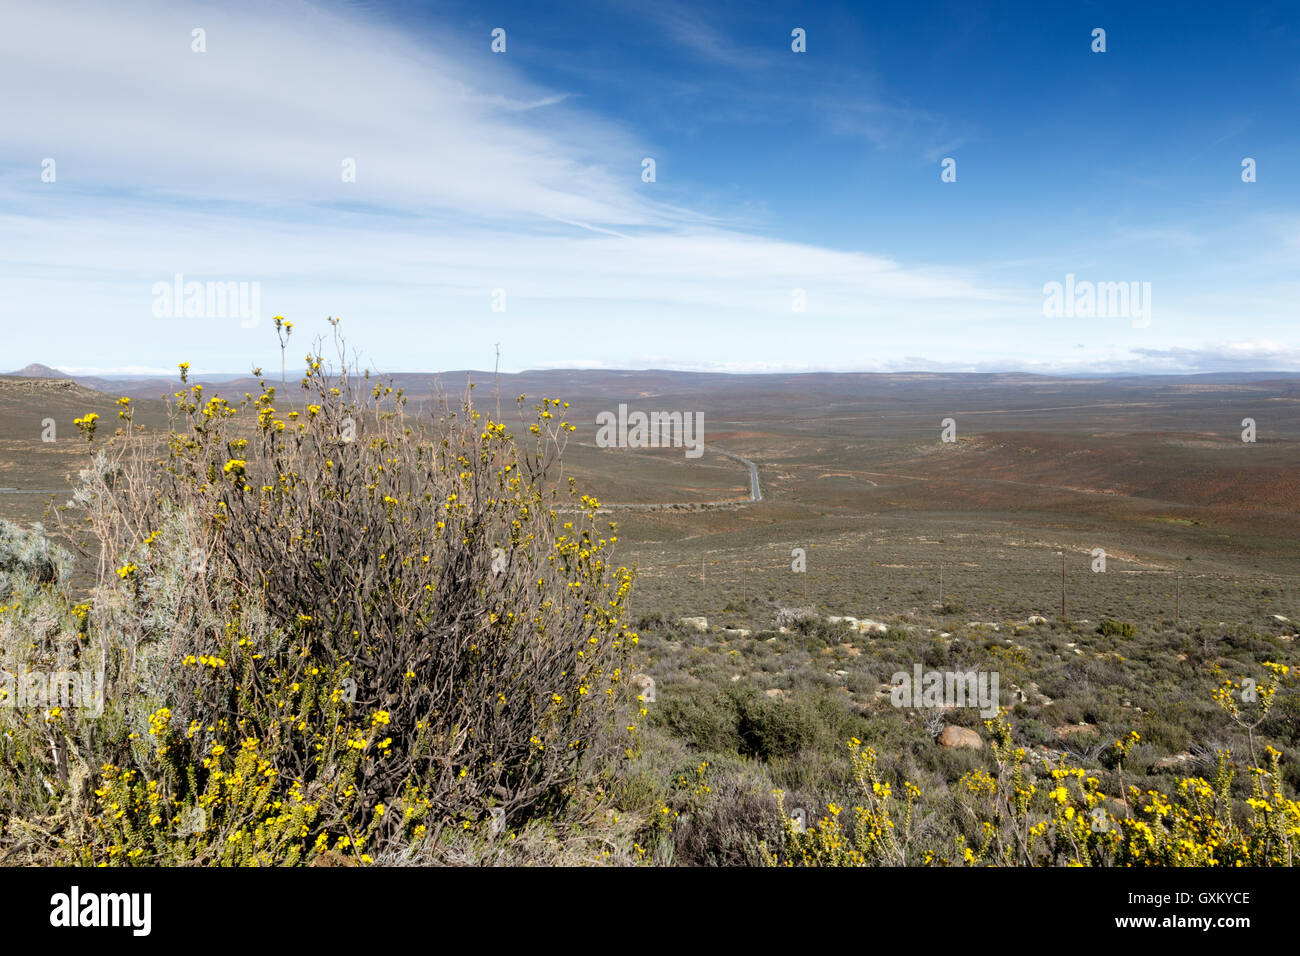 Yellow in a field of nothing - Sutherland is a town with about 2,841 inhabitants in the Northern Cape province of - Stock Image